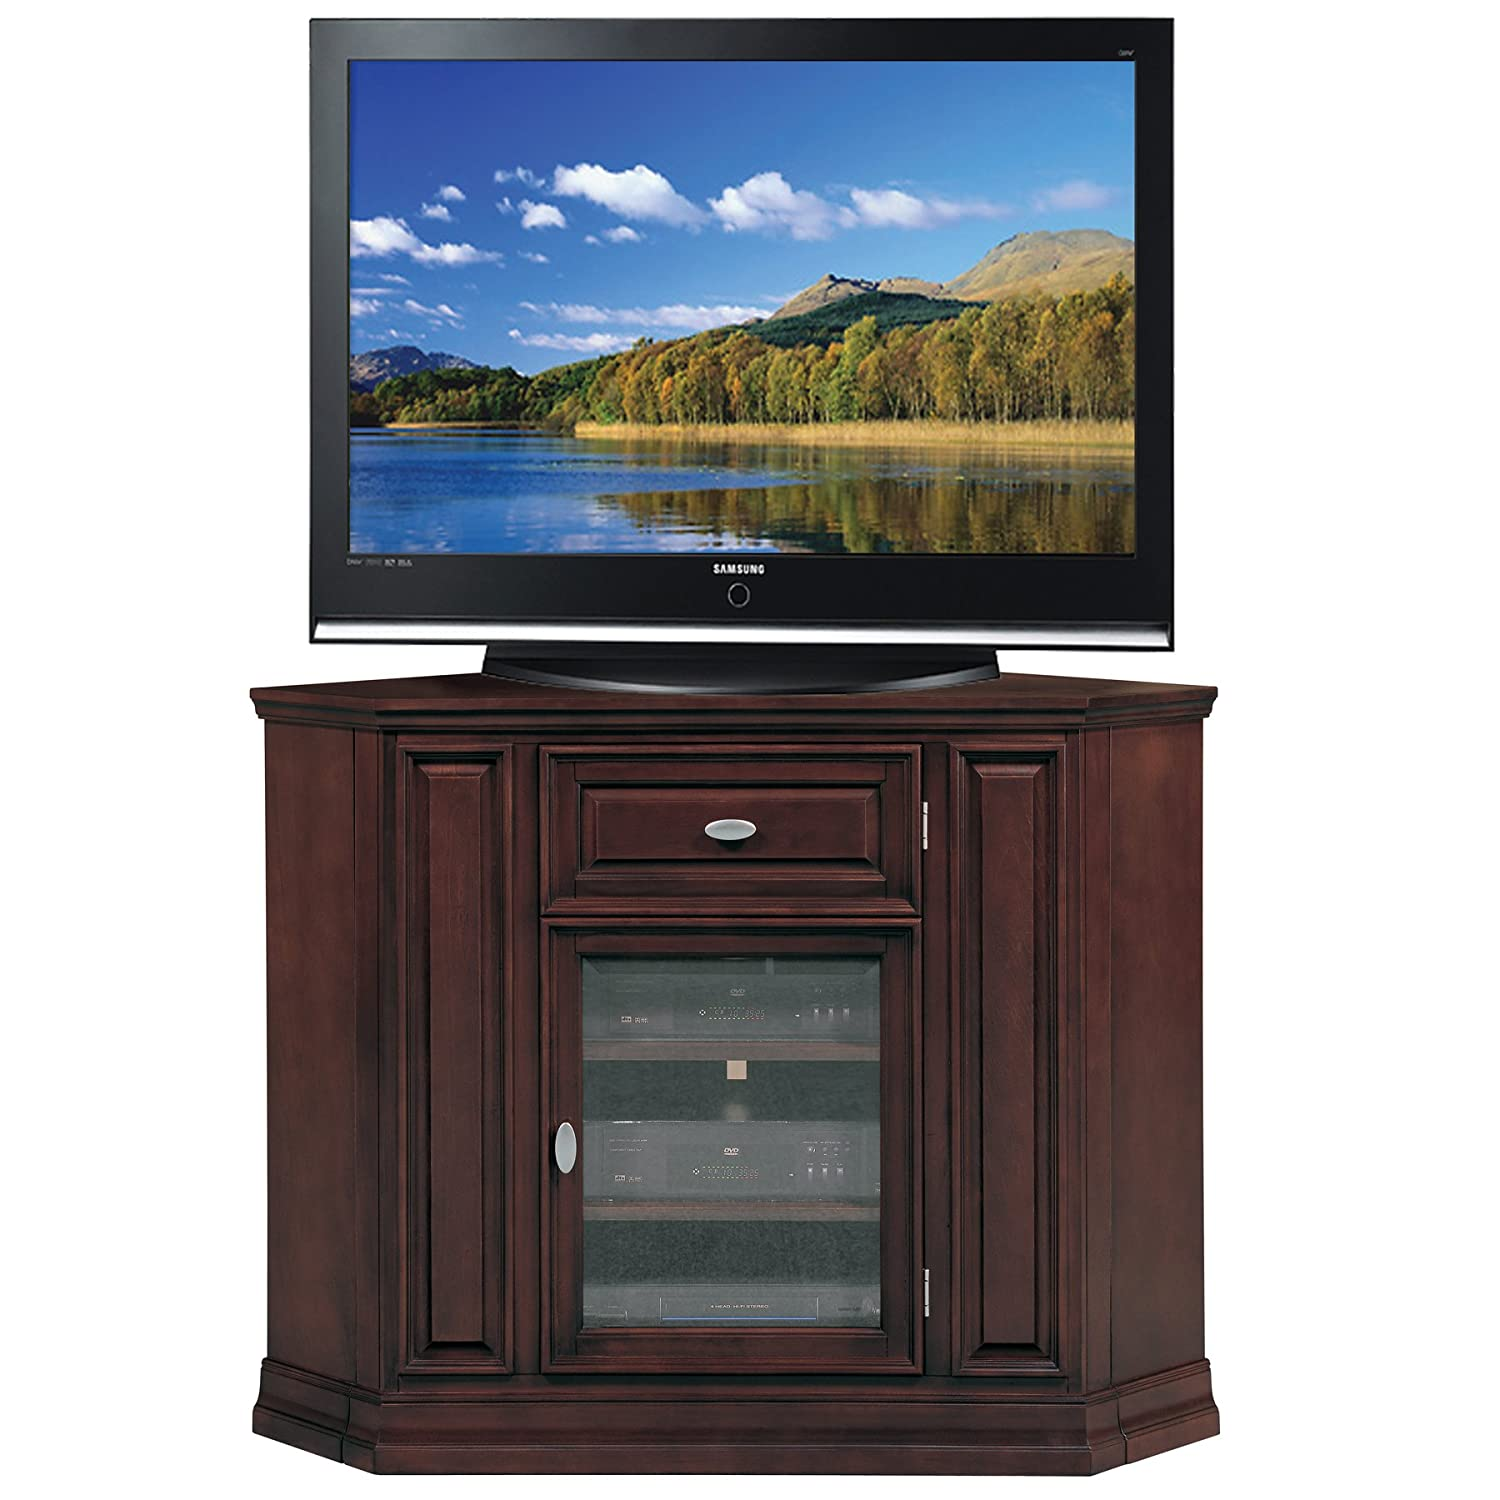 Cheap legends furniture cambridge fireplace media center in cherry - Amazon Com Leick Home Riley Holliday 46 Corner Tv Stand Chocolate Cherry Finish Kitchen Dining